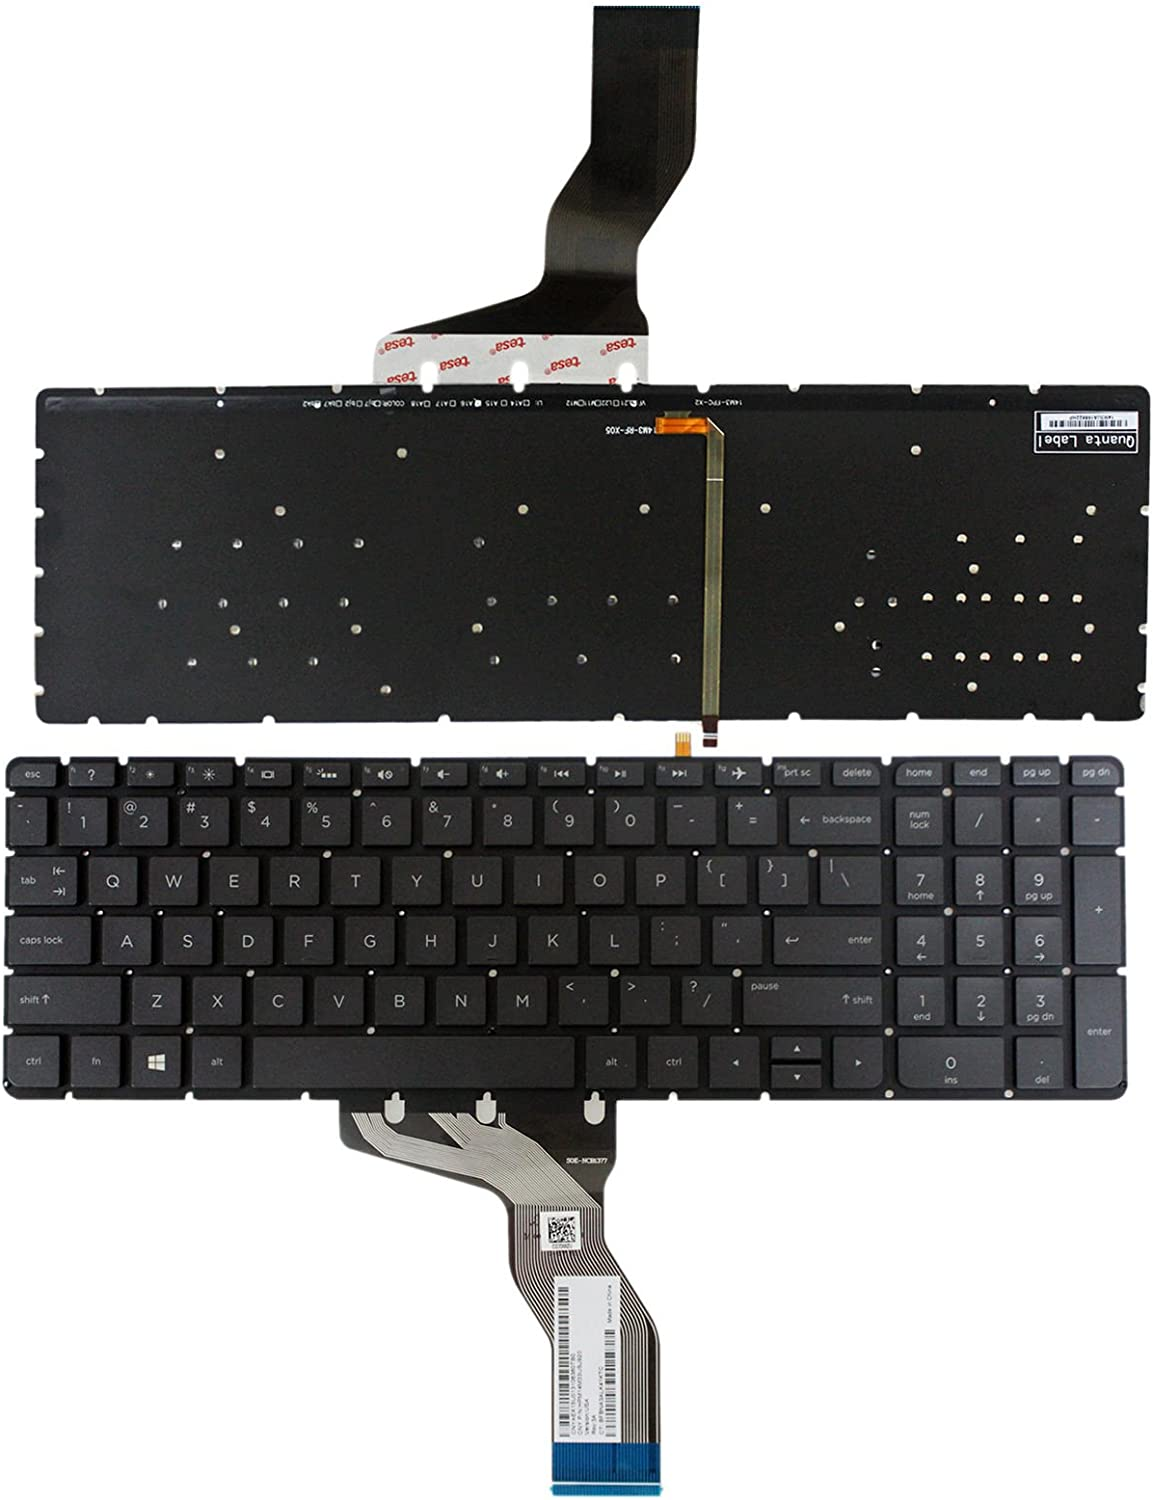 Without Palmrest Givwizd Replacement Backlit Keyboard for HP Pavilion 15-p037ne 15-p038na 15-p038ne 15-p039tx 15-p040ne 15-p040nl 15-p040tx 15-p041tx 15-p042nd 15-p043ax 15-p043na 15-p045nd